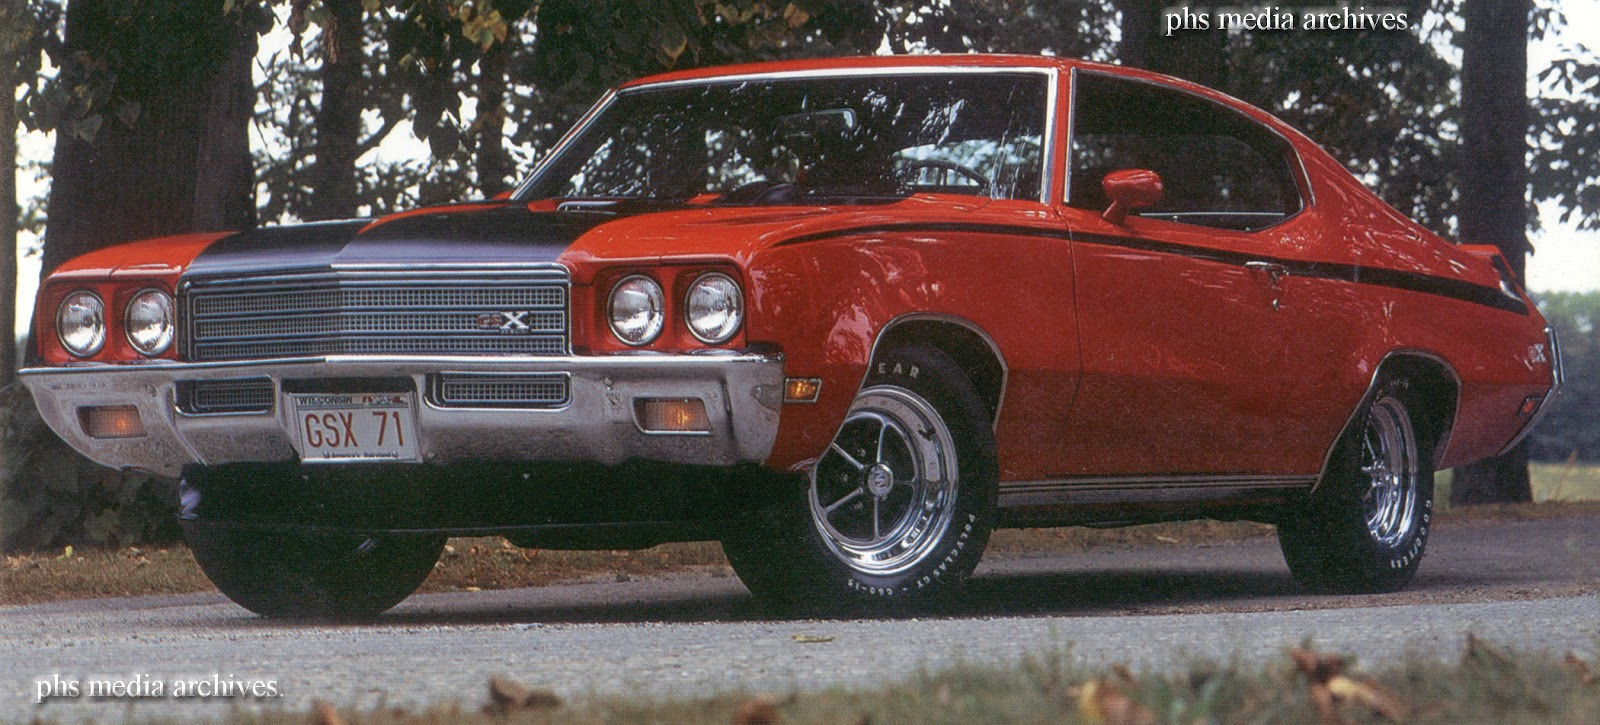 1971 72 Buick Gsx Flints Muscle Car In Retrograde Orbit Road Runner Wiring Diagram Odds Are Real Good Your Will Be Some Shade Of Green They Had About 3 Hues Available This 71 Is Fire Red